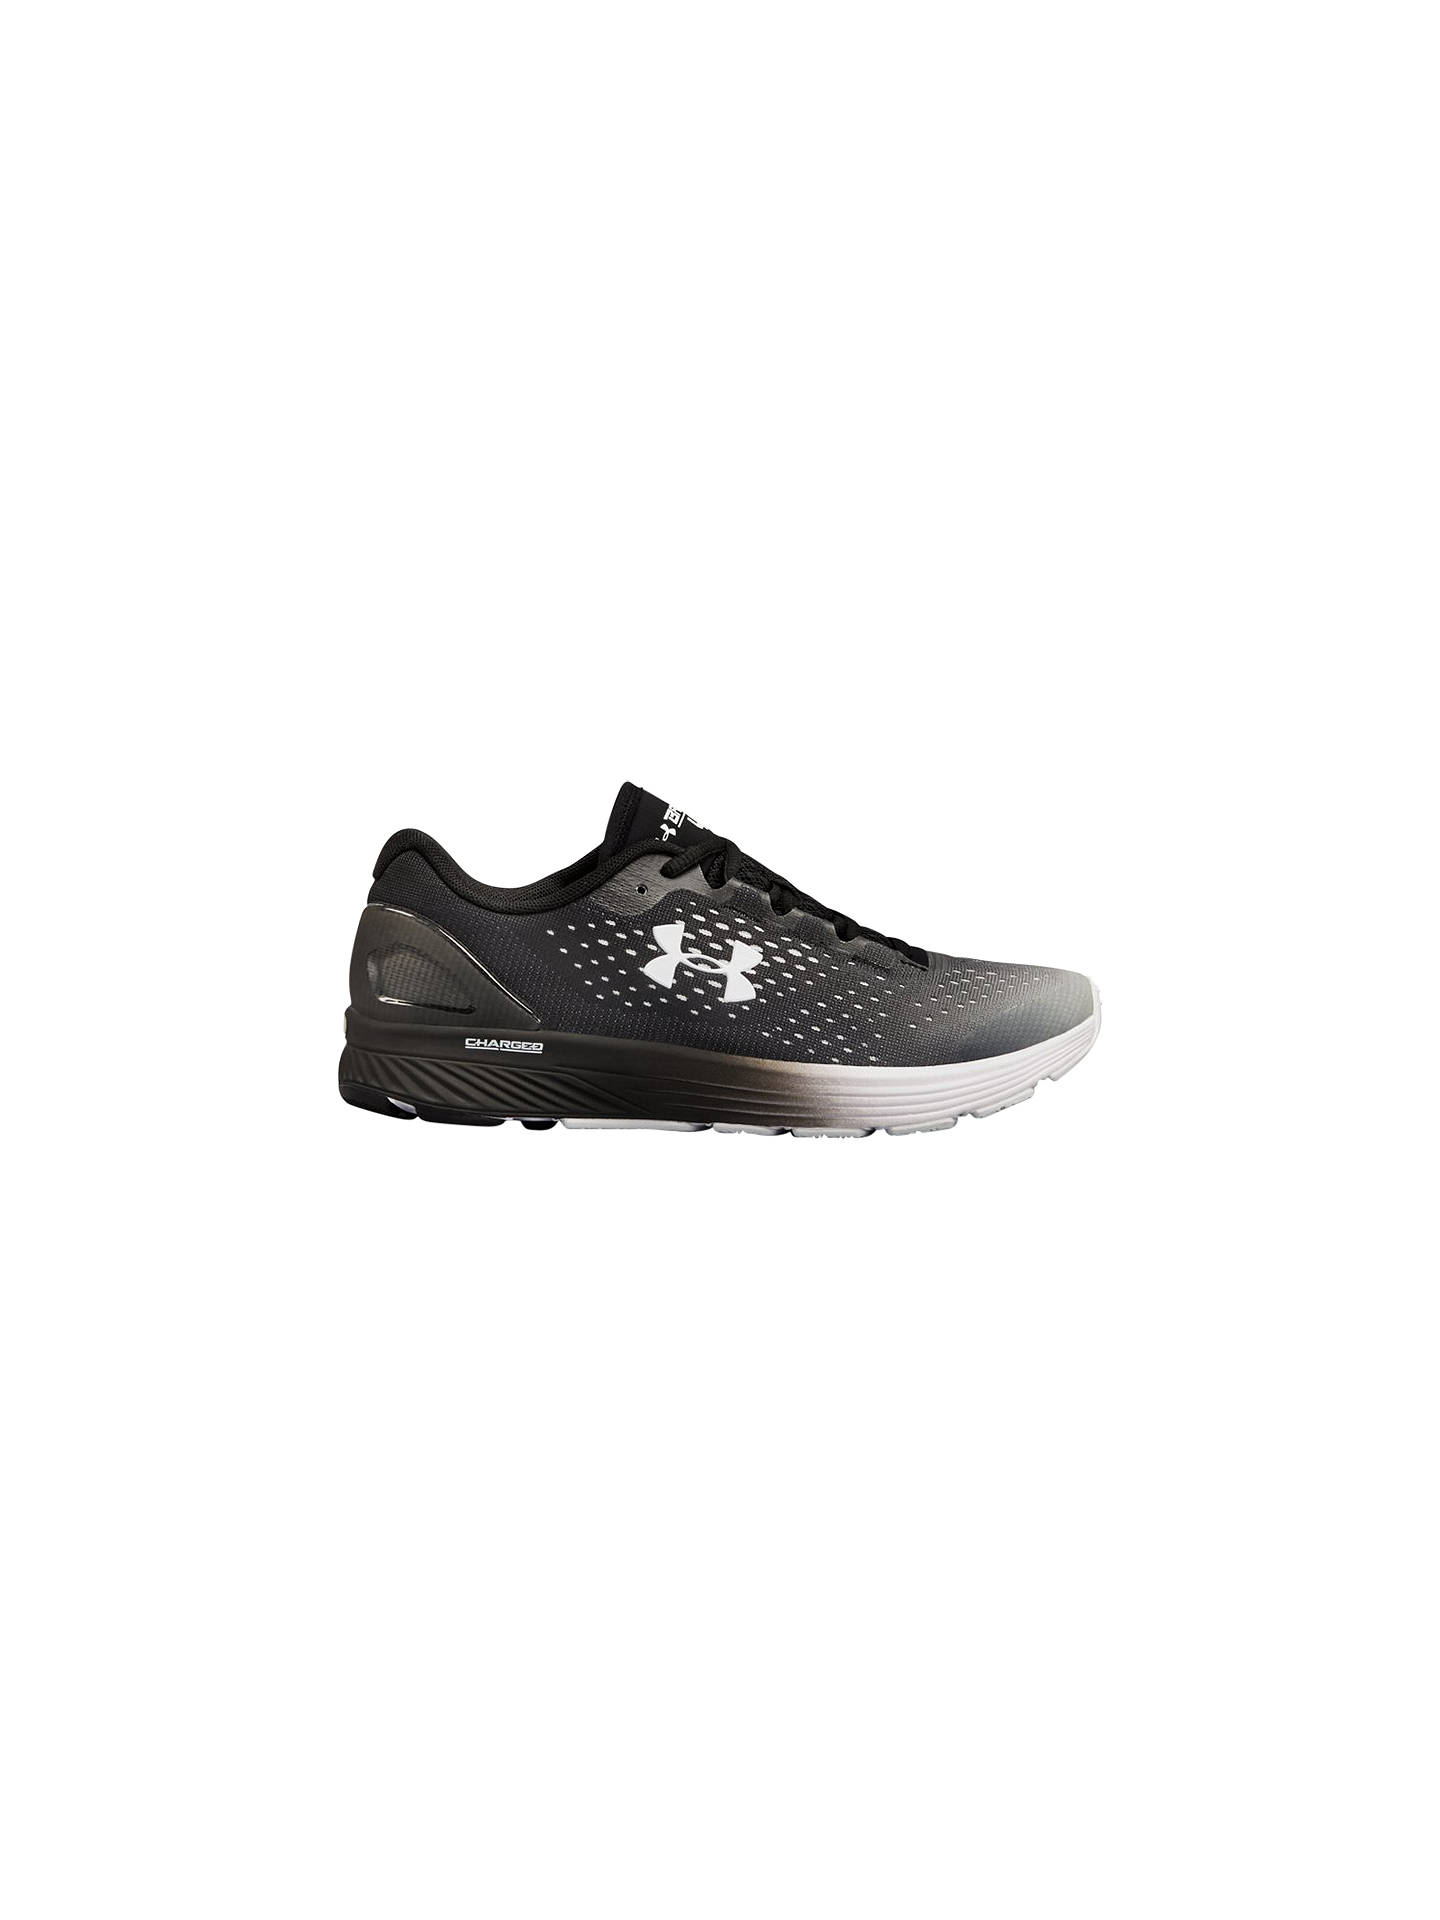 quality design 6f49d 2125f Under Armour Charged Bandit 4 Women's Running Shoes, Black ...